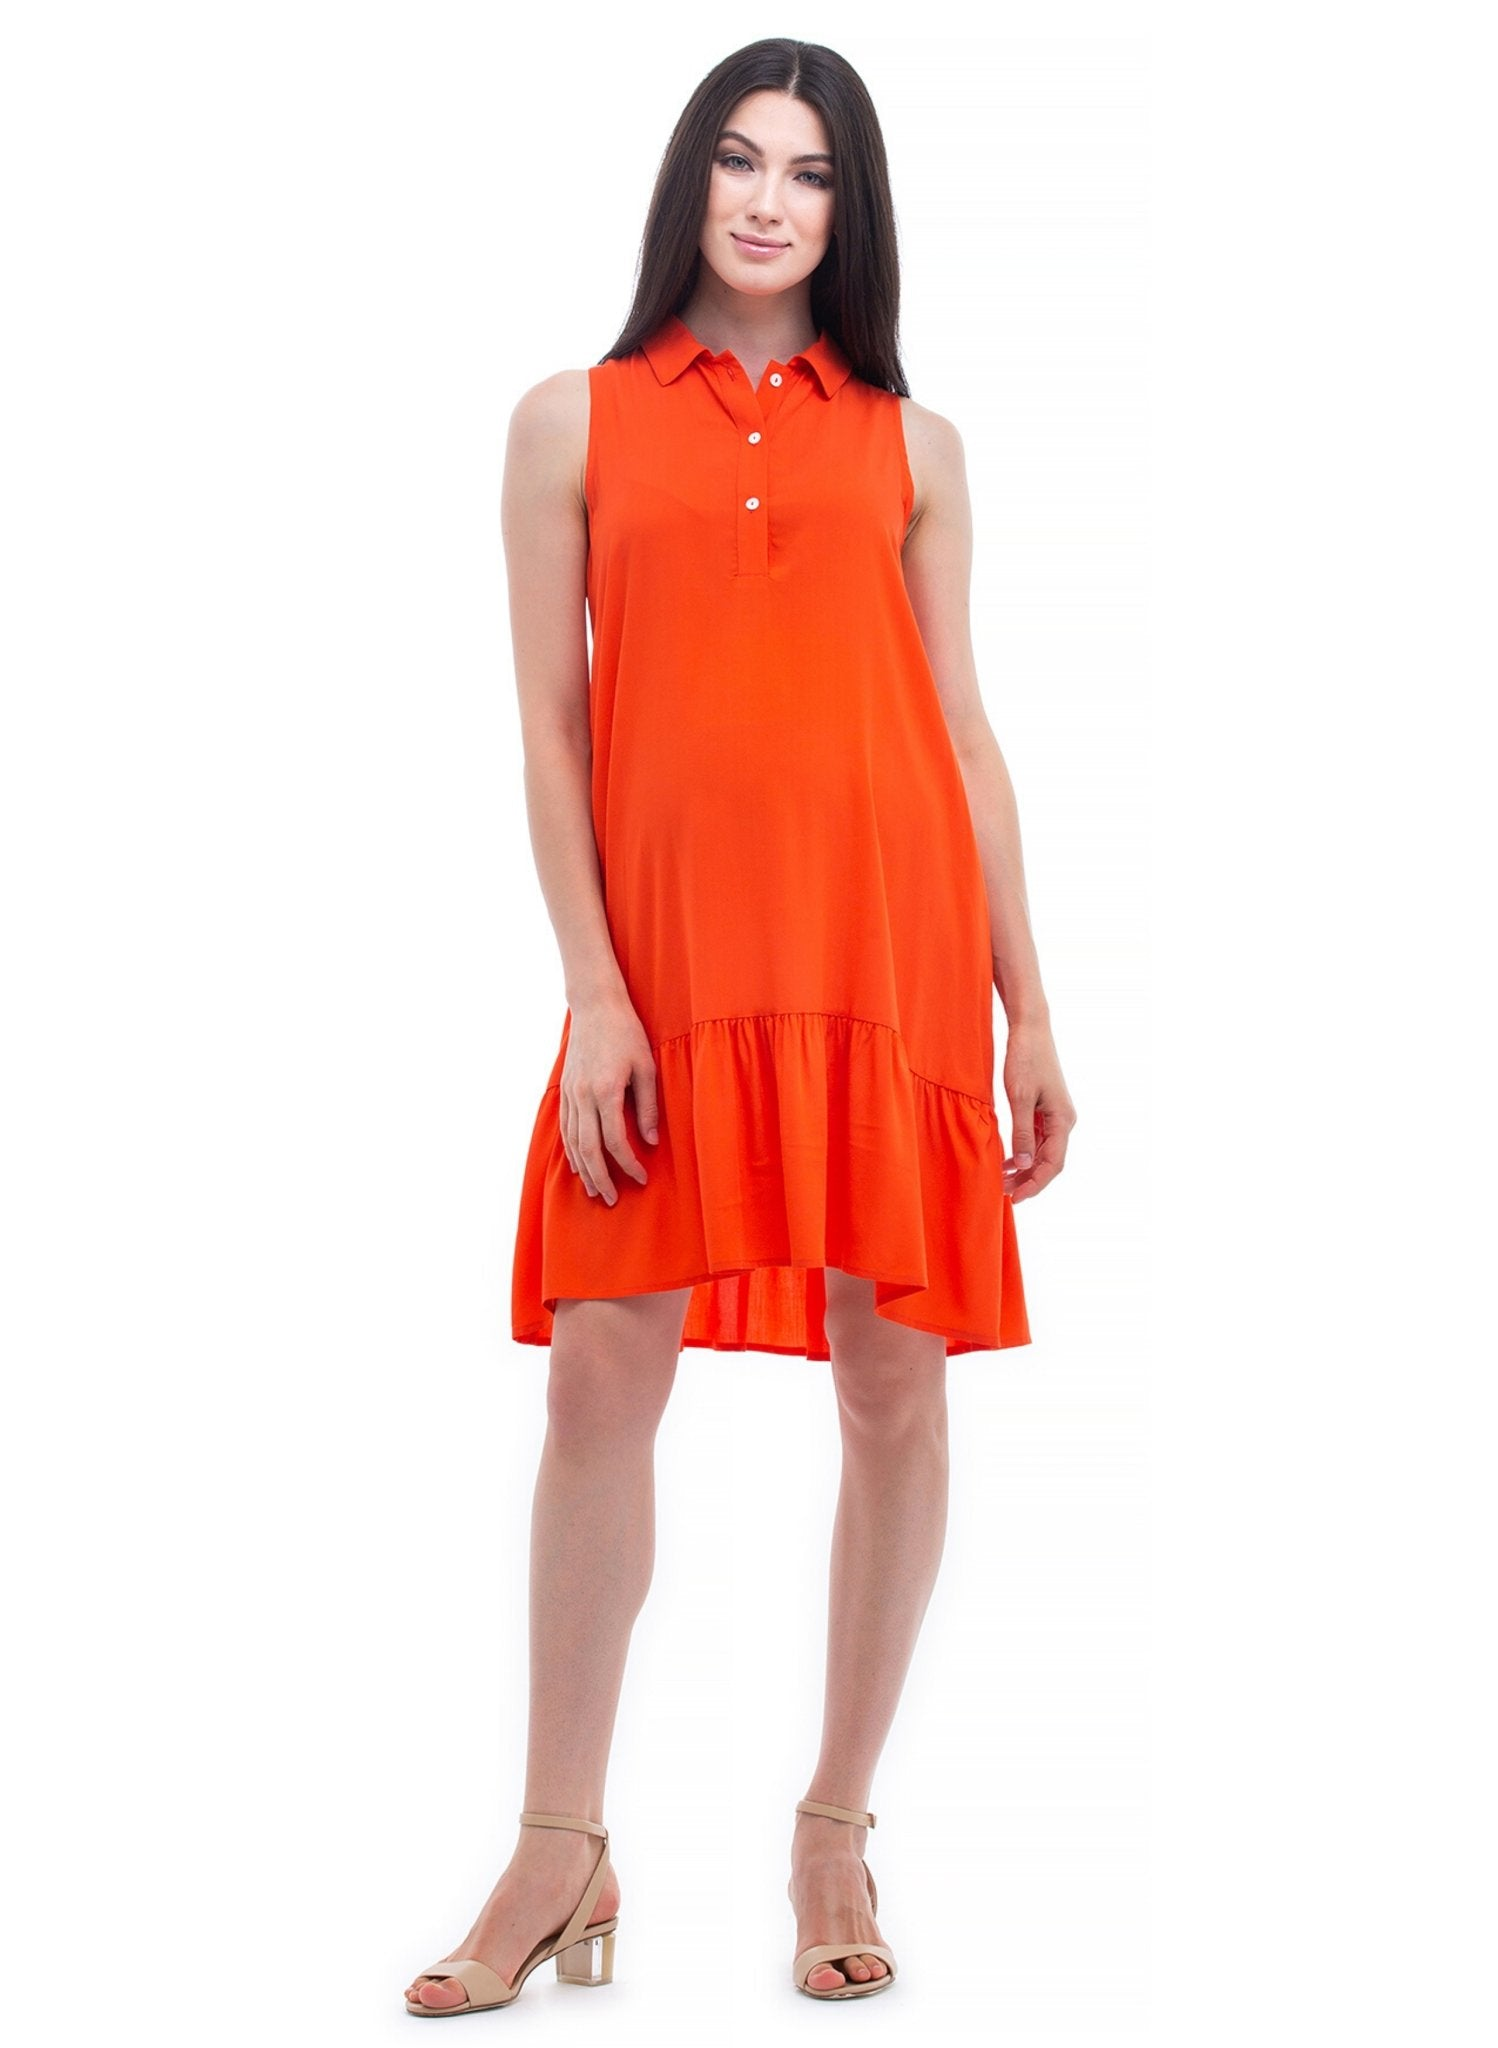 Vittoria Mini Maternity Dress - Spicy Orange - Mums and Bumps